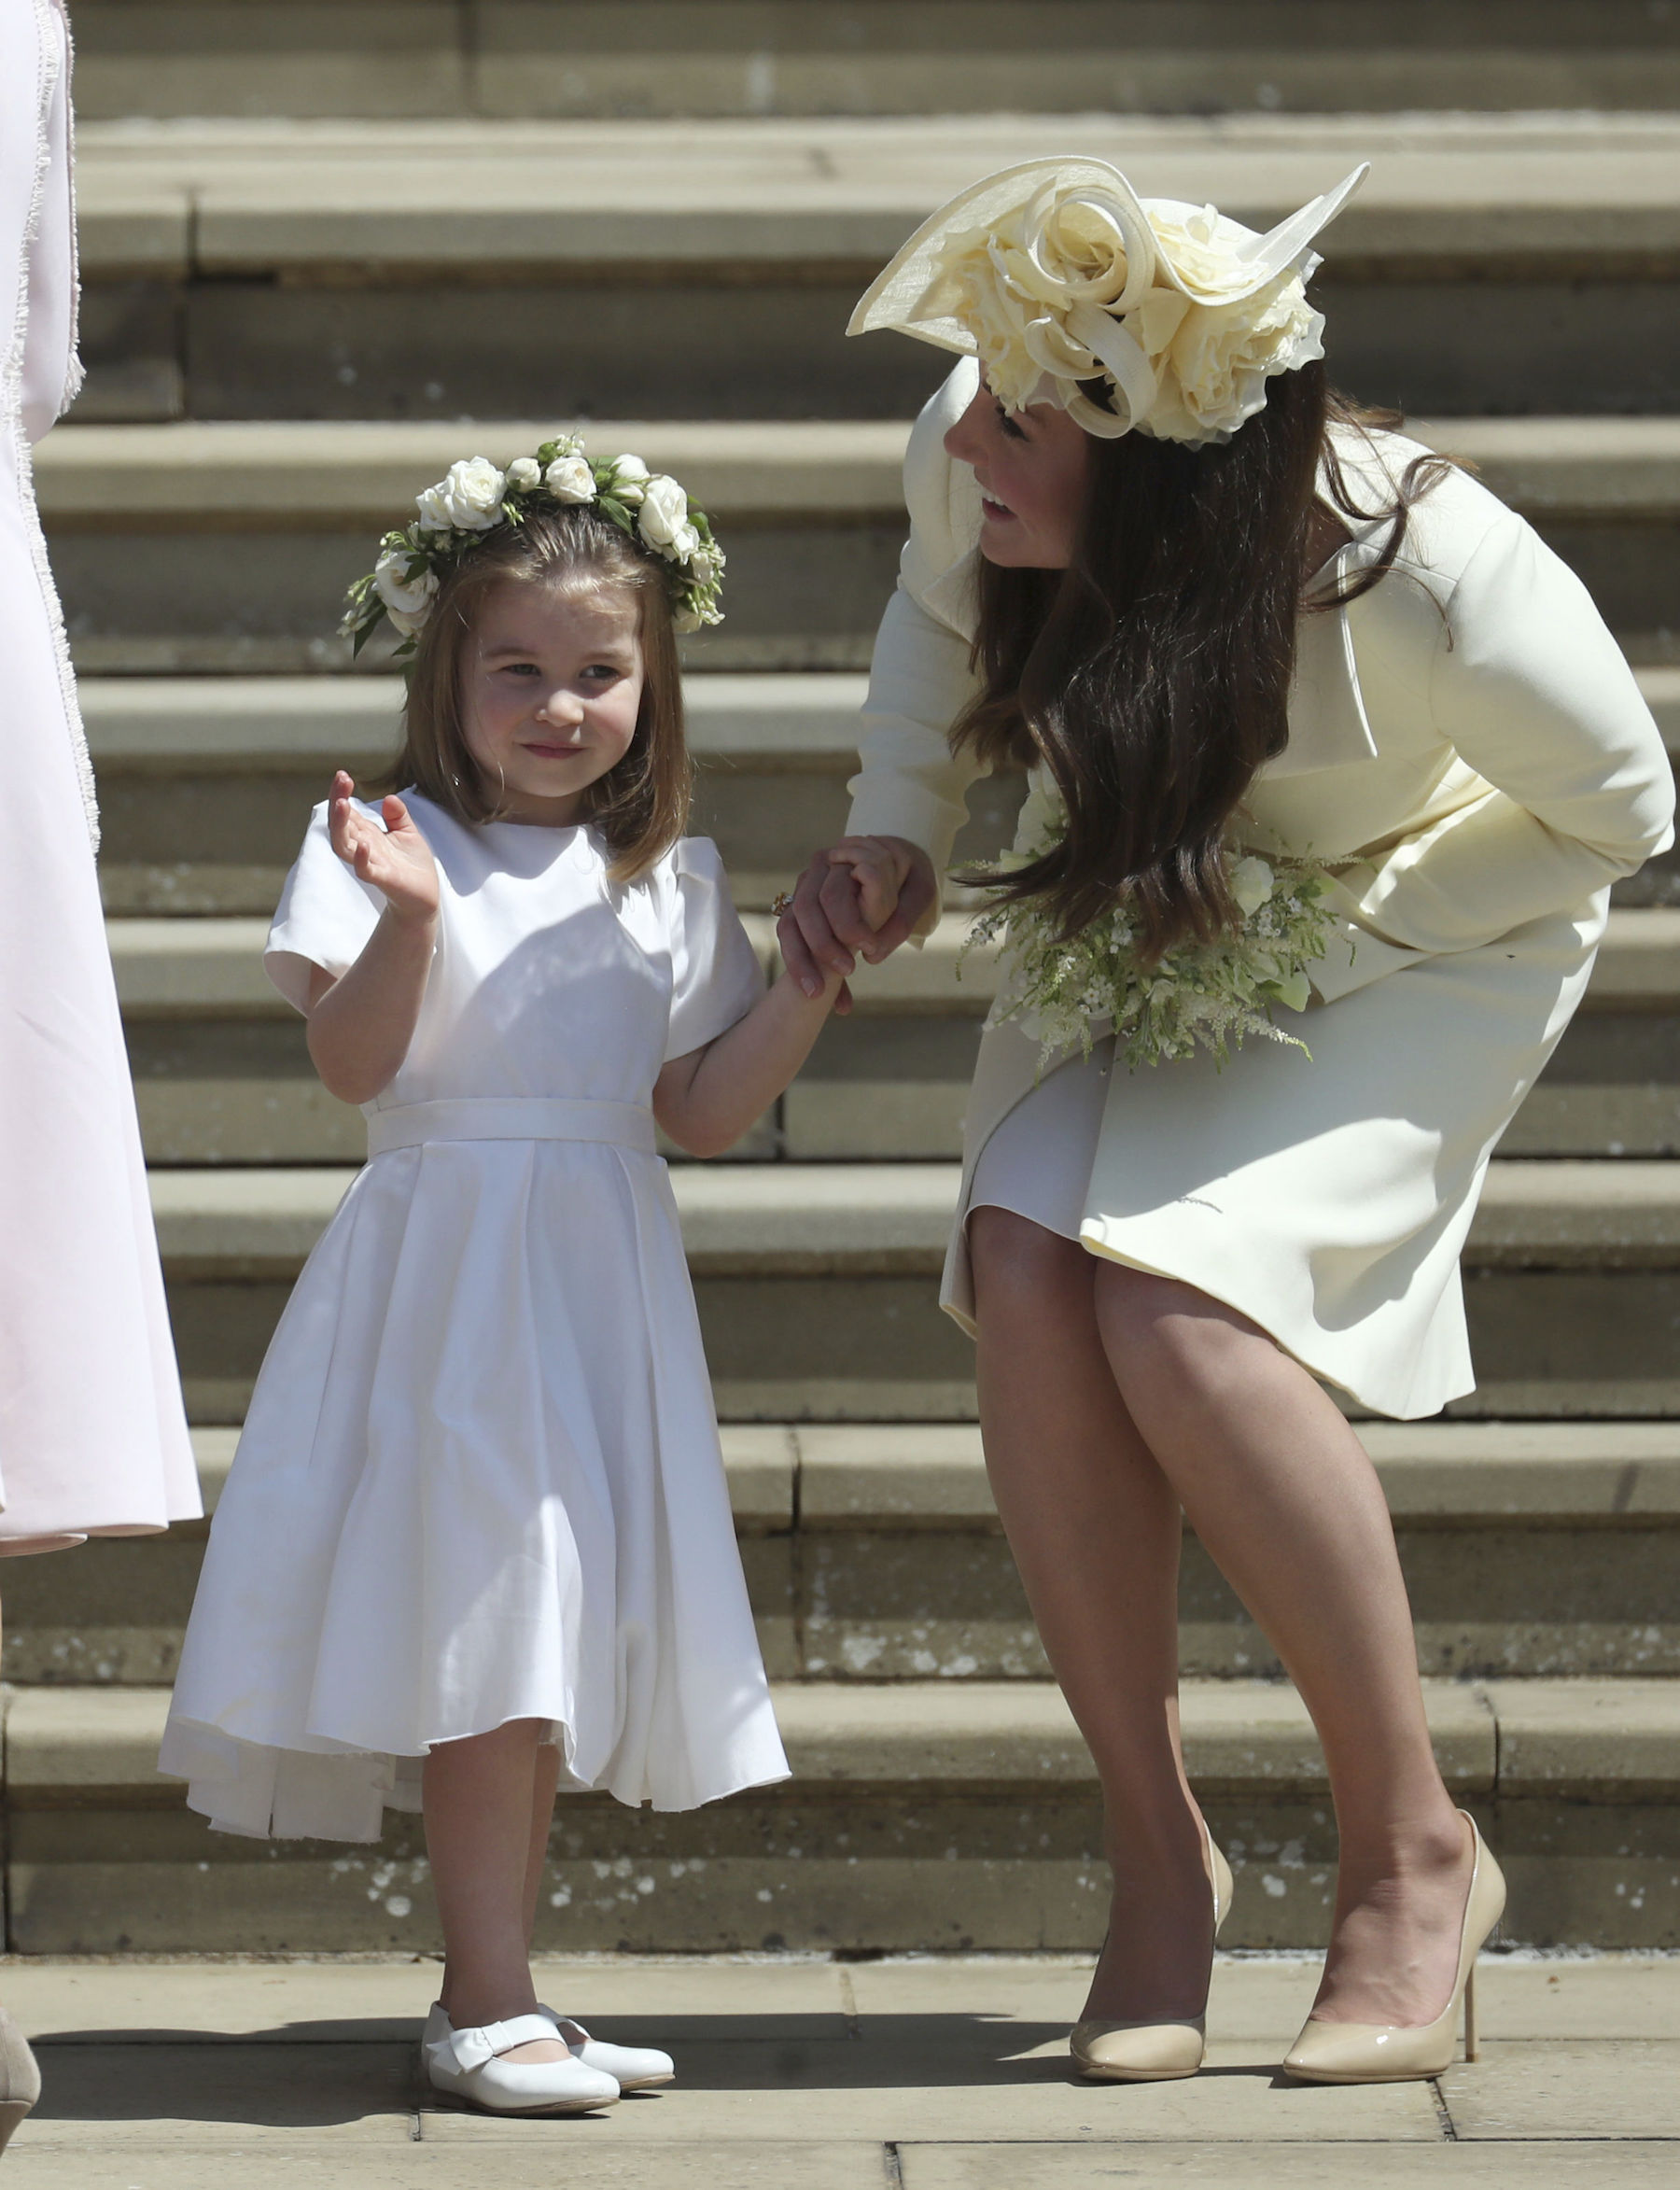 <div class='meta'><div class='origin-logo' data-origin='AP'></div><span class='caption-text' data-credit='Jane Barlow/pool photo via AP'>Princess Charlotte and Kate, Duchess of Cambridge after the wedding ceremony of Prince Harry and Meghan Markle.</span></div>